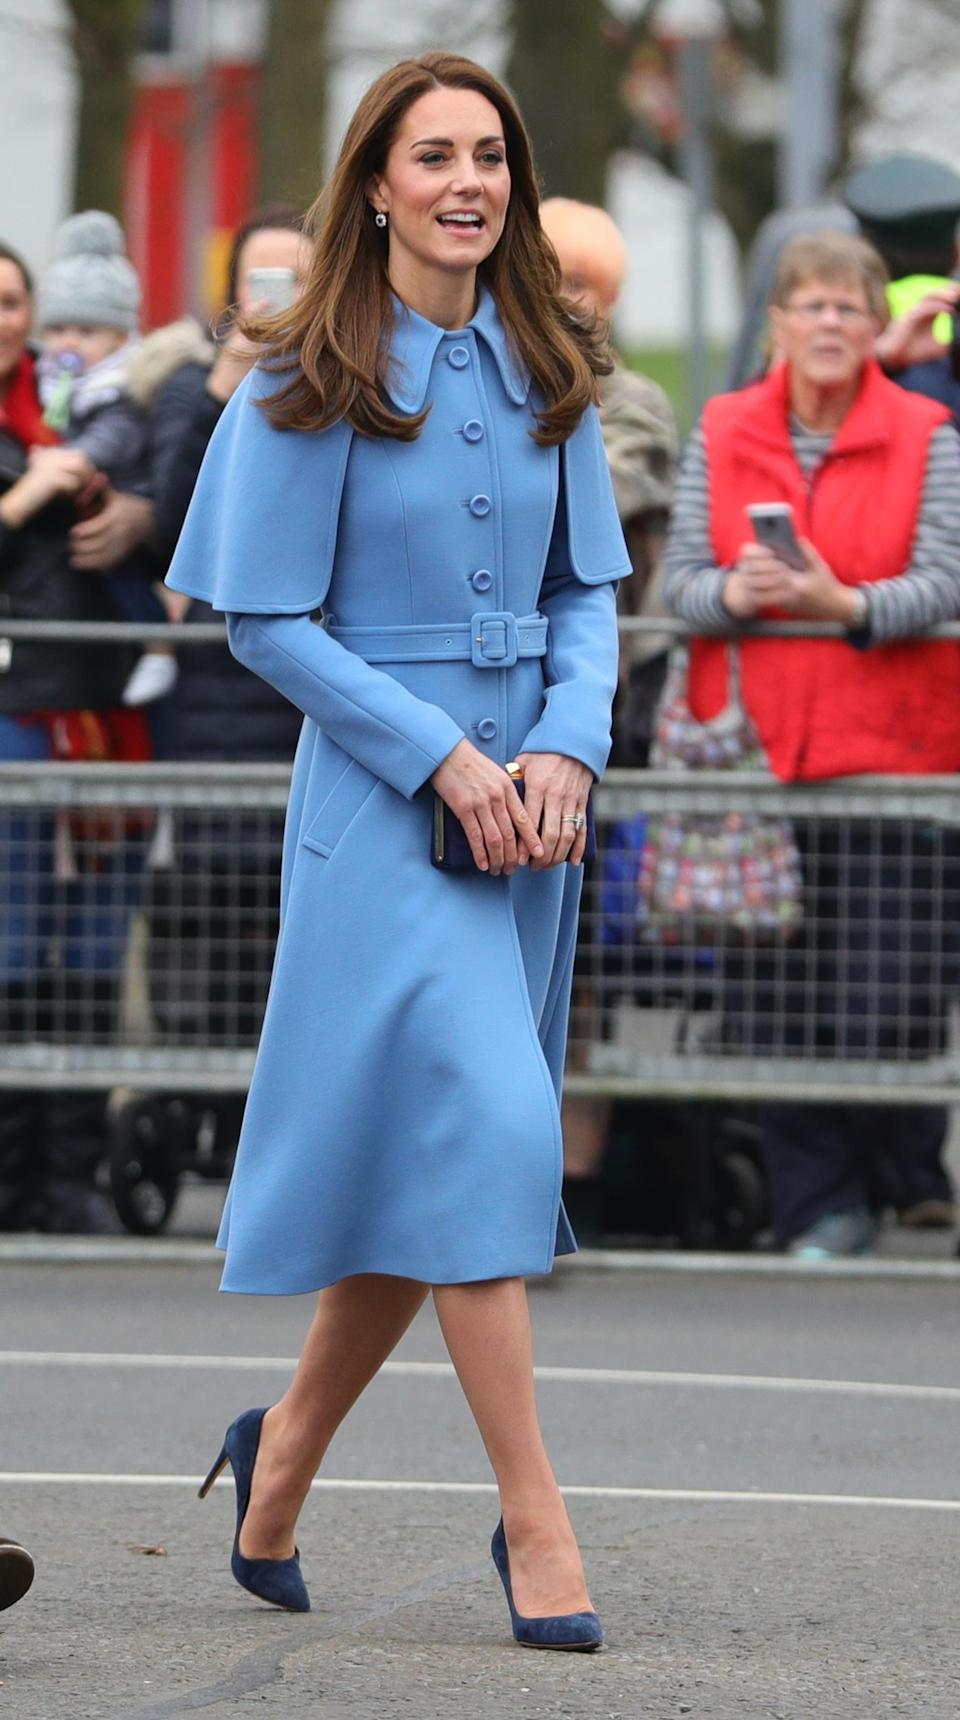 During a visit to Ballymena in Northern Ireland, Kate debuted a new powder blue coat from Mulberry, with a repeat blue Jenny Packham dress underneath and her Rupert Sanderson navy courts. She accessorised with a matching Jimmy Choo clutch bag and Princess Diana's sapphire and diamond earrings. [Photo: PA]